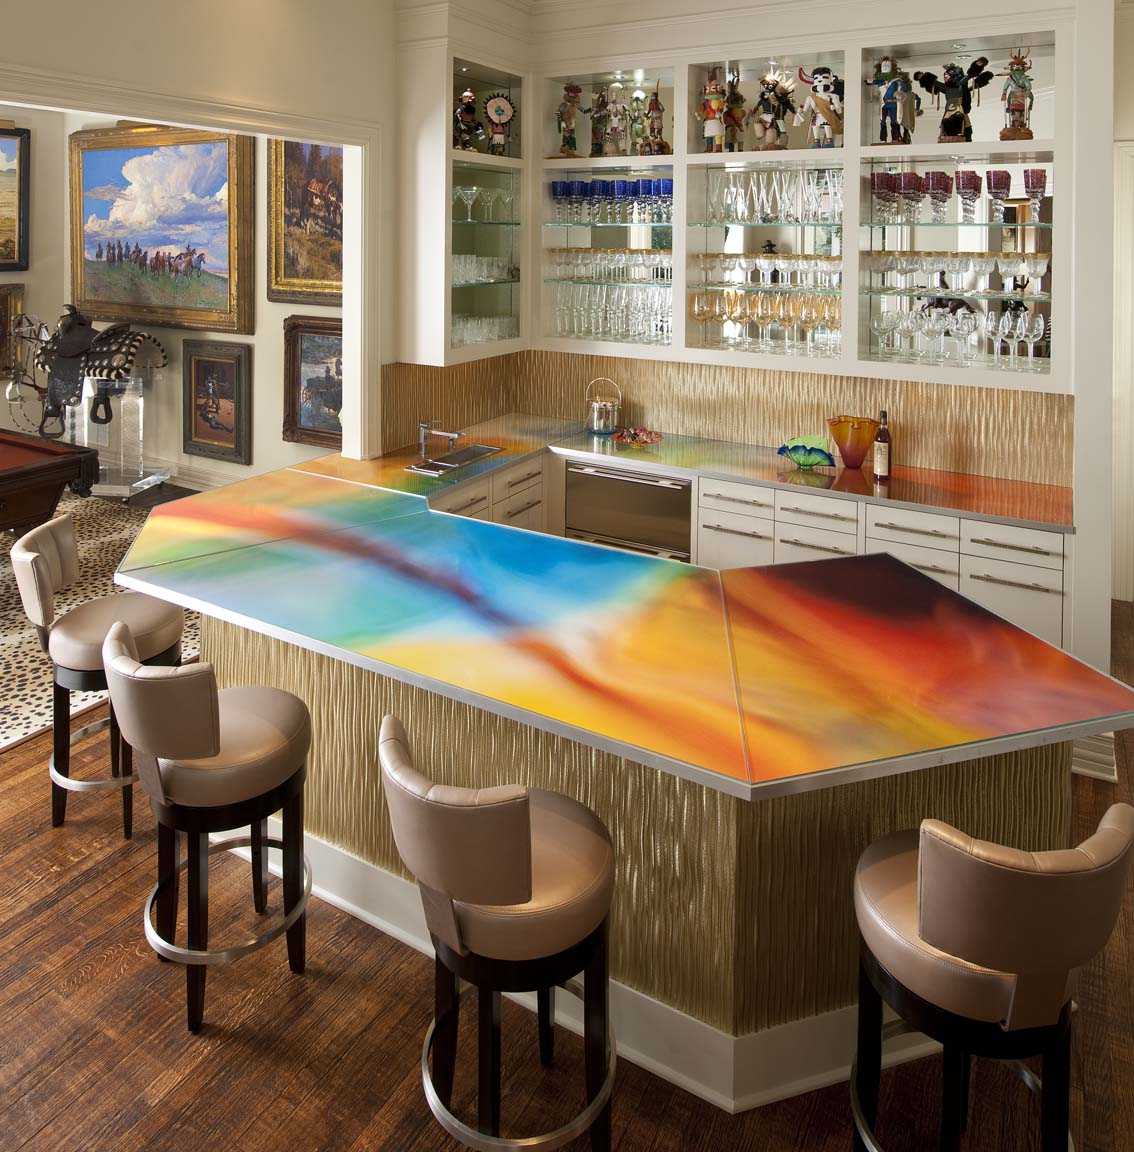 captivating-stylish-colorful-bar-table-furniture-with-surprising-modern-pink-round-chairs